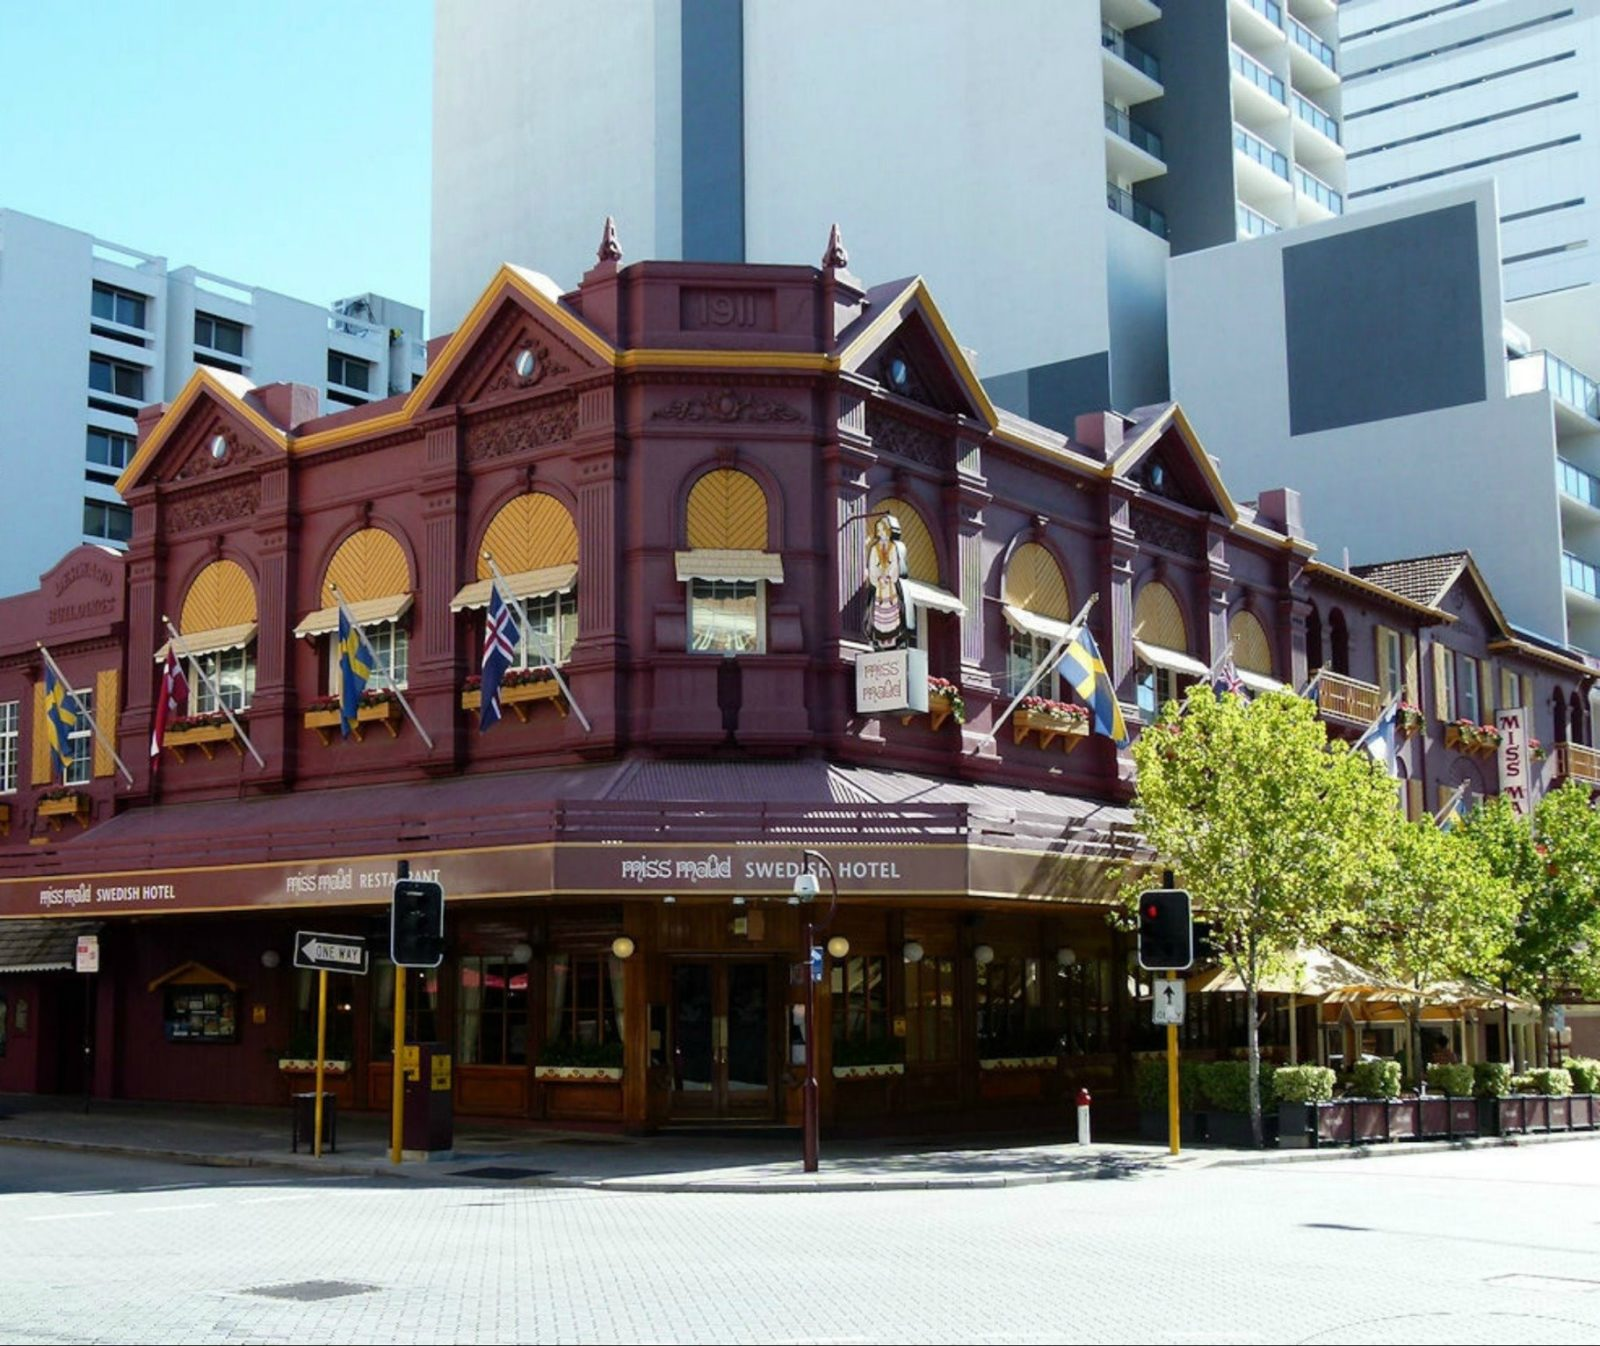 Miss Maud Swedish Hotel, Perth, Western Australia